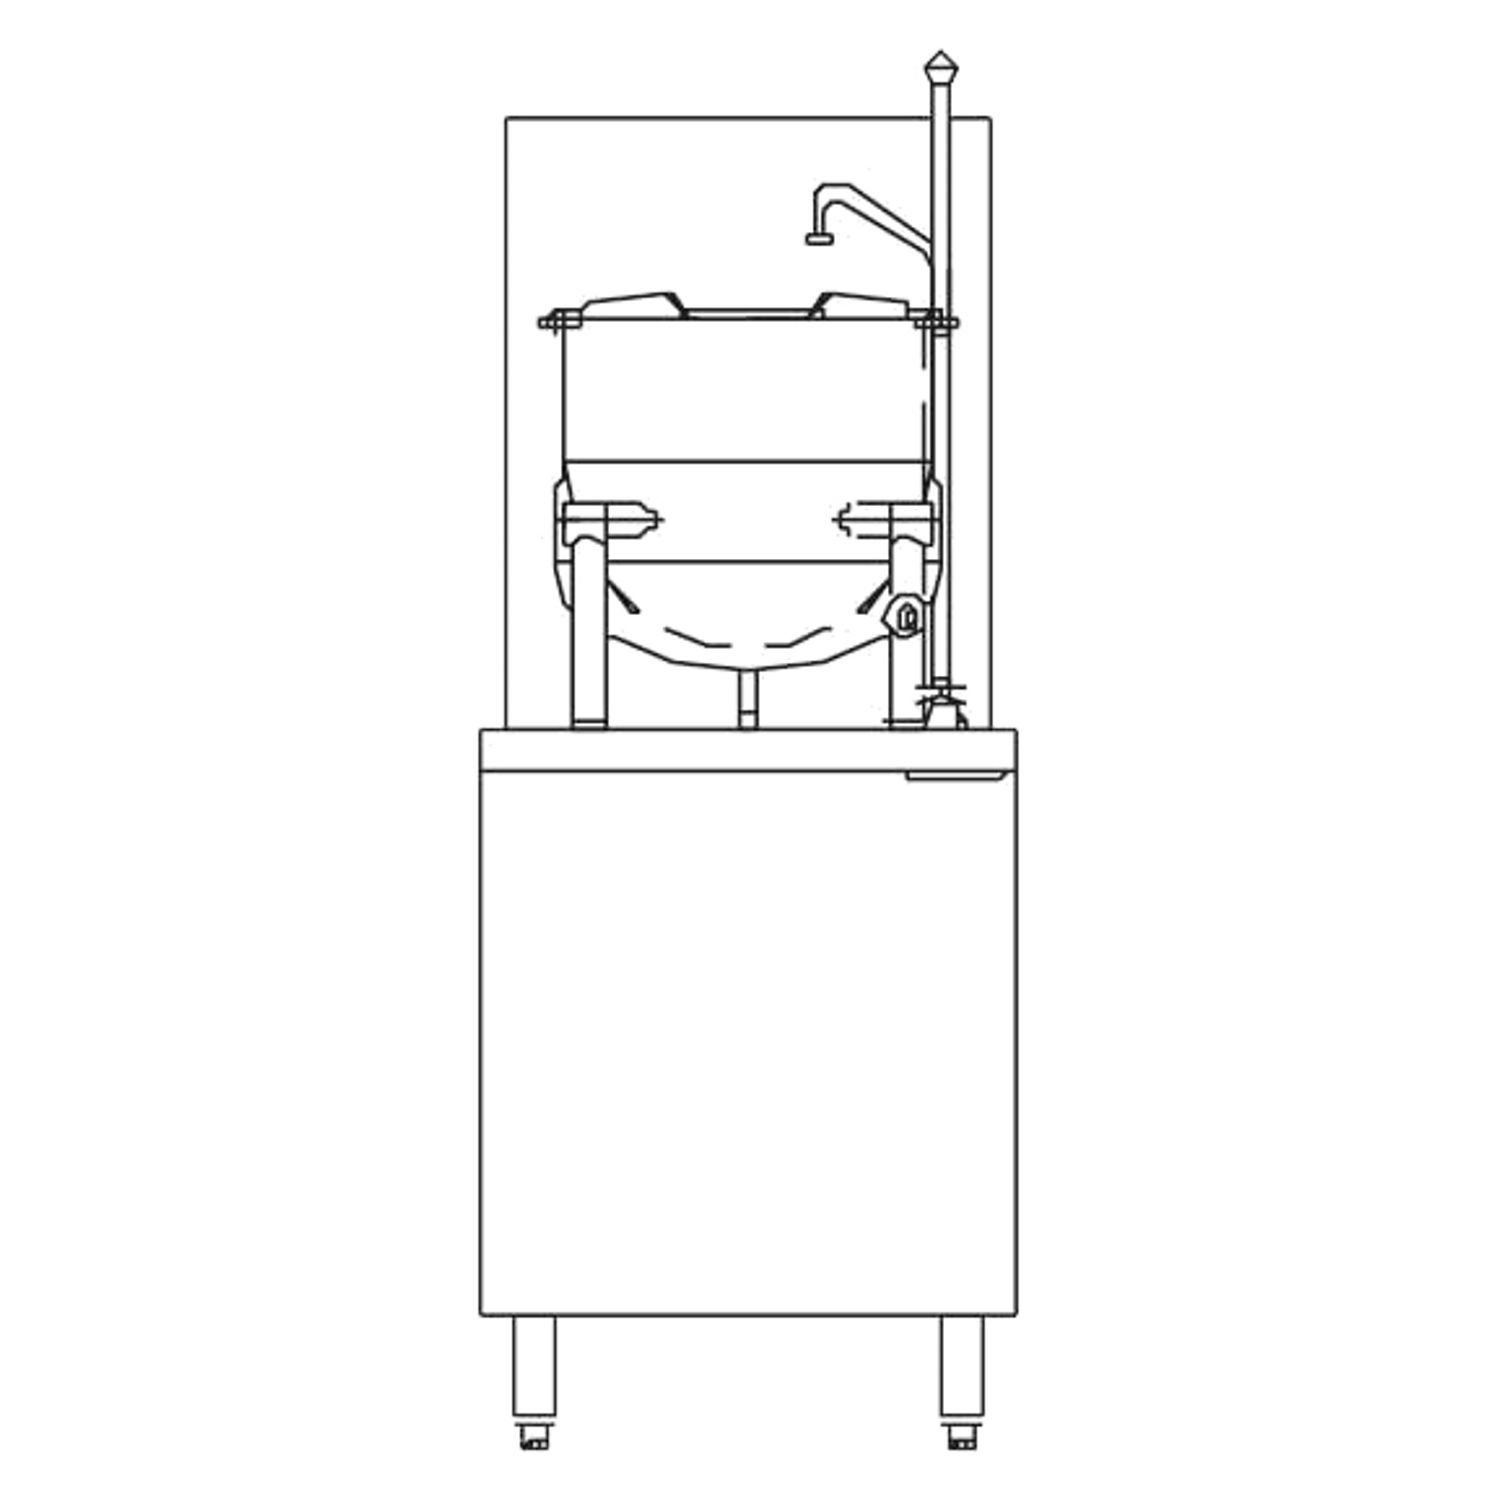 "Blodgett CB24G-6K Kettle/Stand Assembly, Gas, 24"" wide, (1) 6 gallon  kettle, stainless steel exterior"